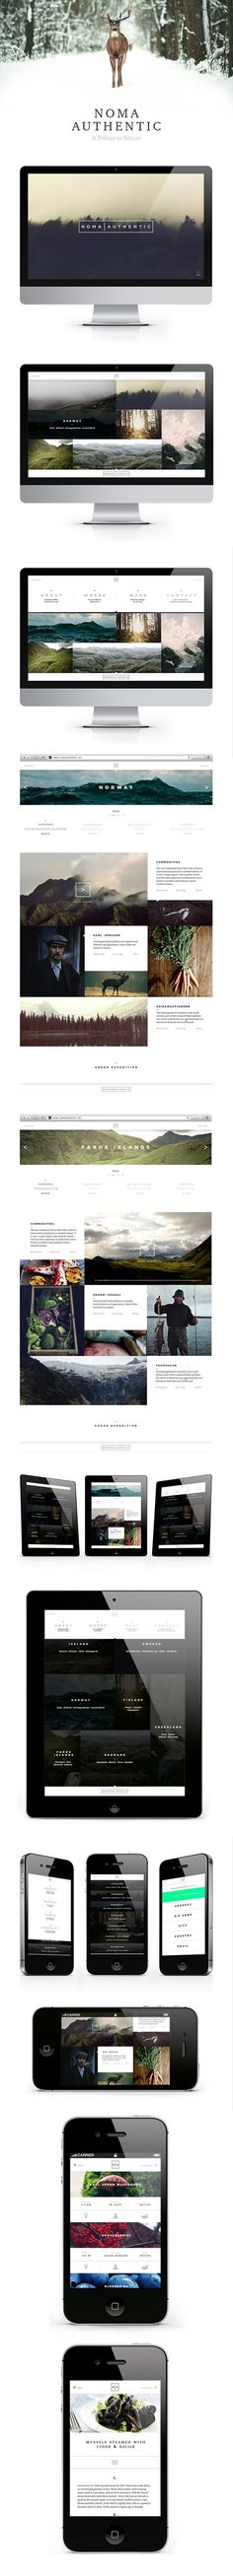 Noma Authentic.  I love the clean layout and photos of nature in this design.  It's very appealing to me and works well with their concept of having people want to learn more about commodity, hunting and fishing in  Scandinavia.: